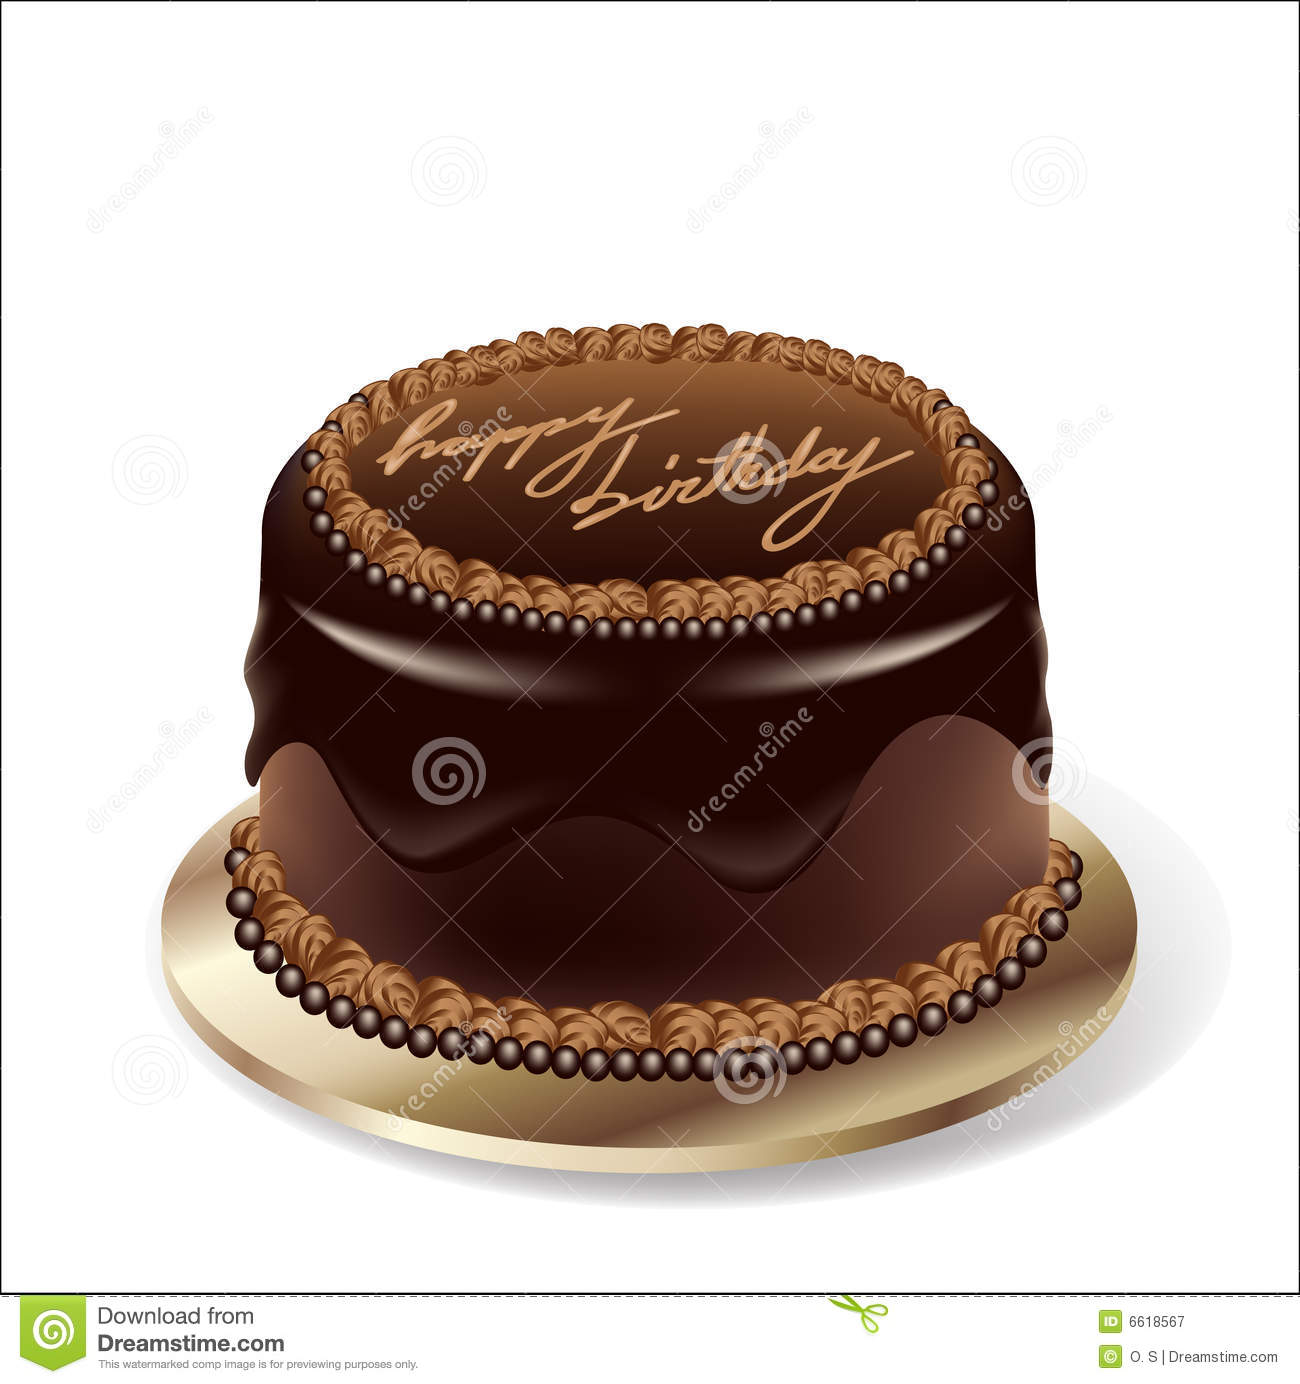 Chocolate Birthday Cake Images Download : Vector Birthday Party Chocolate Cake Stock Vector - Image ...